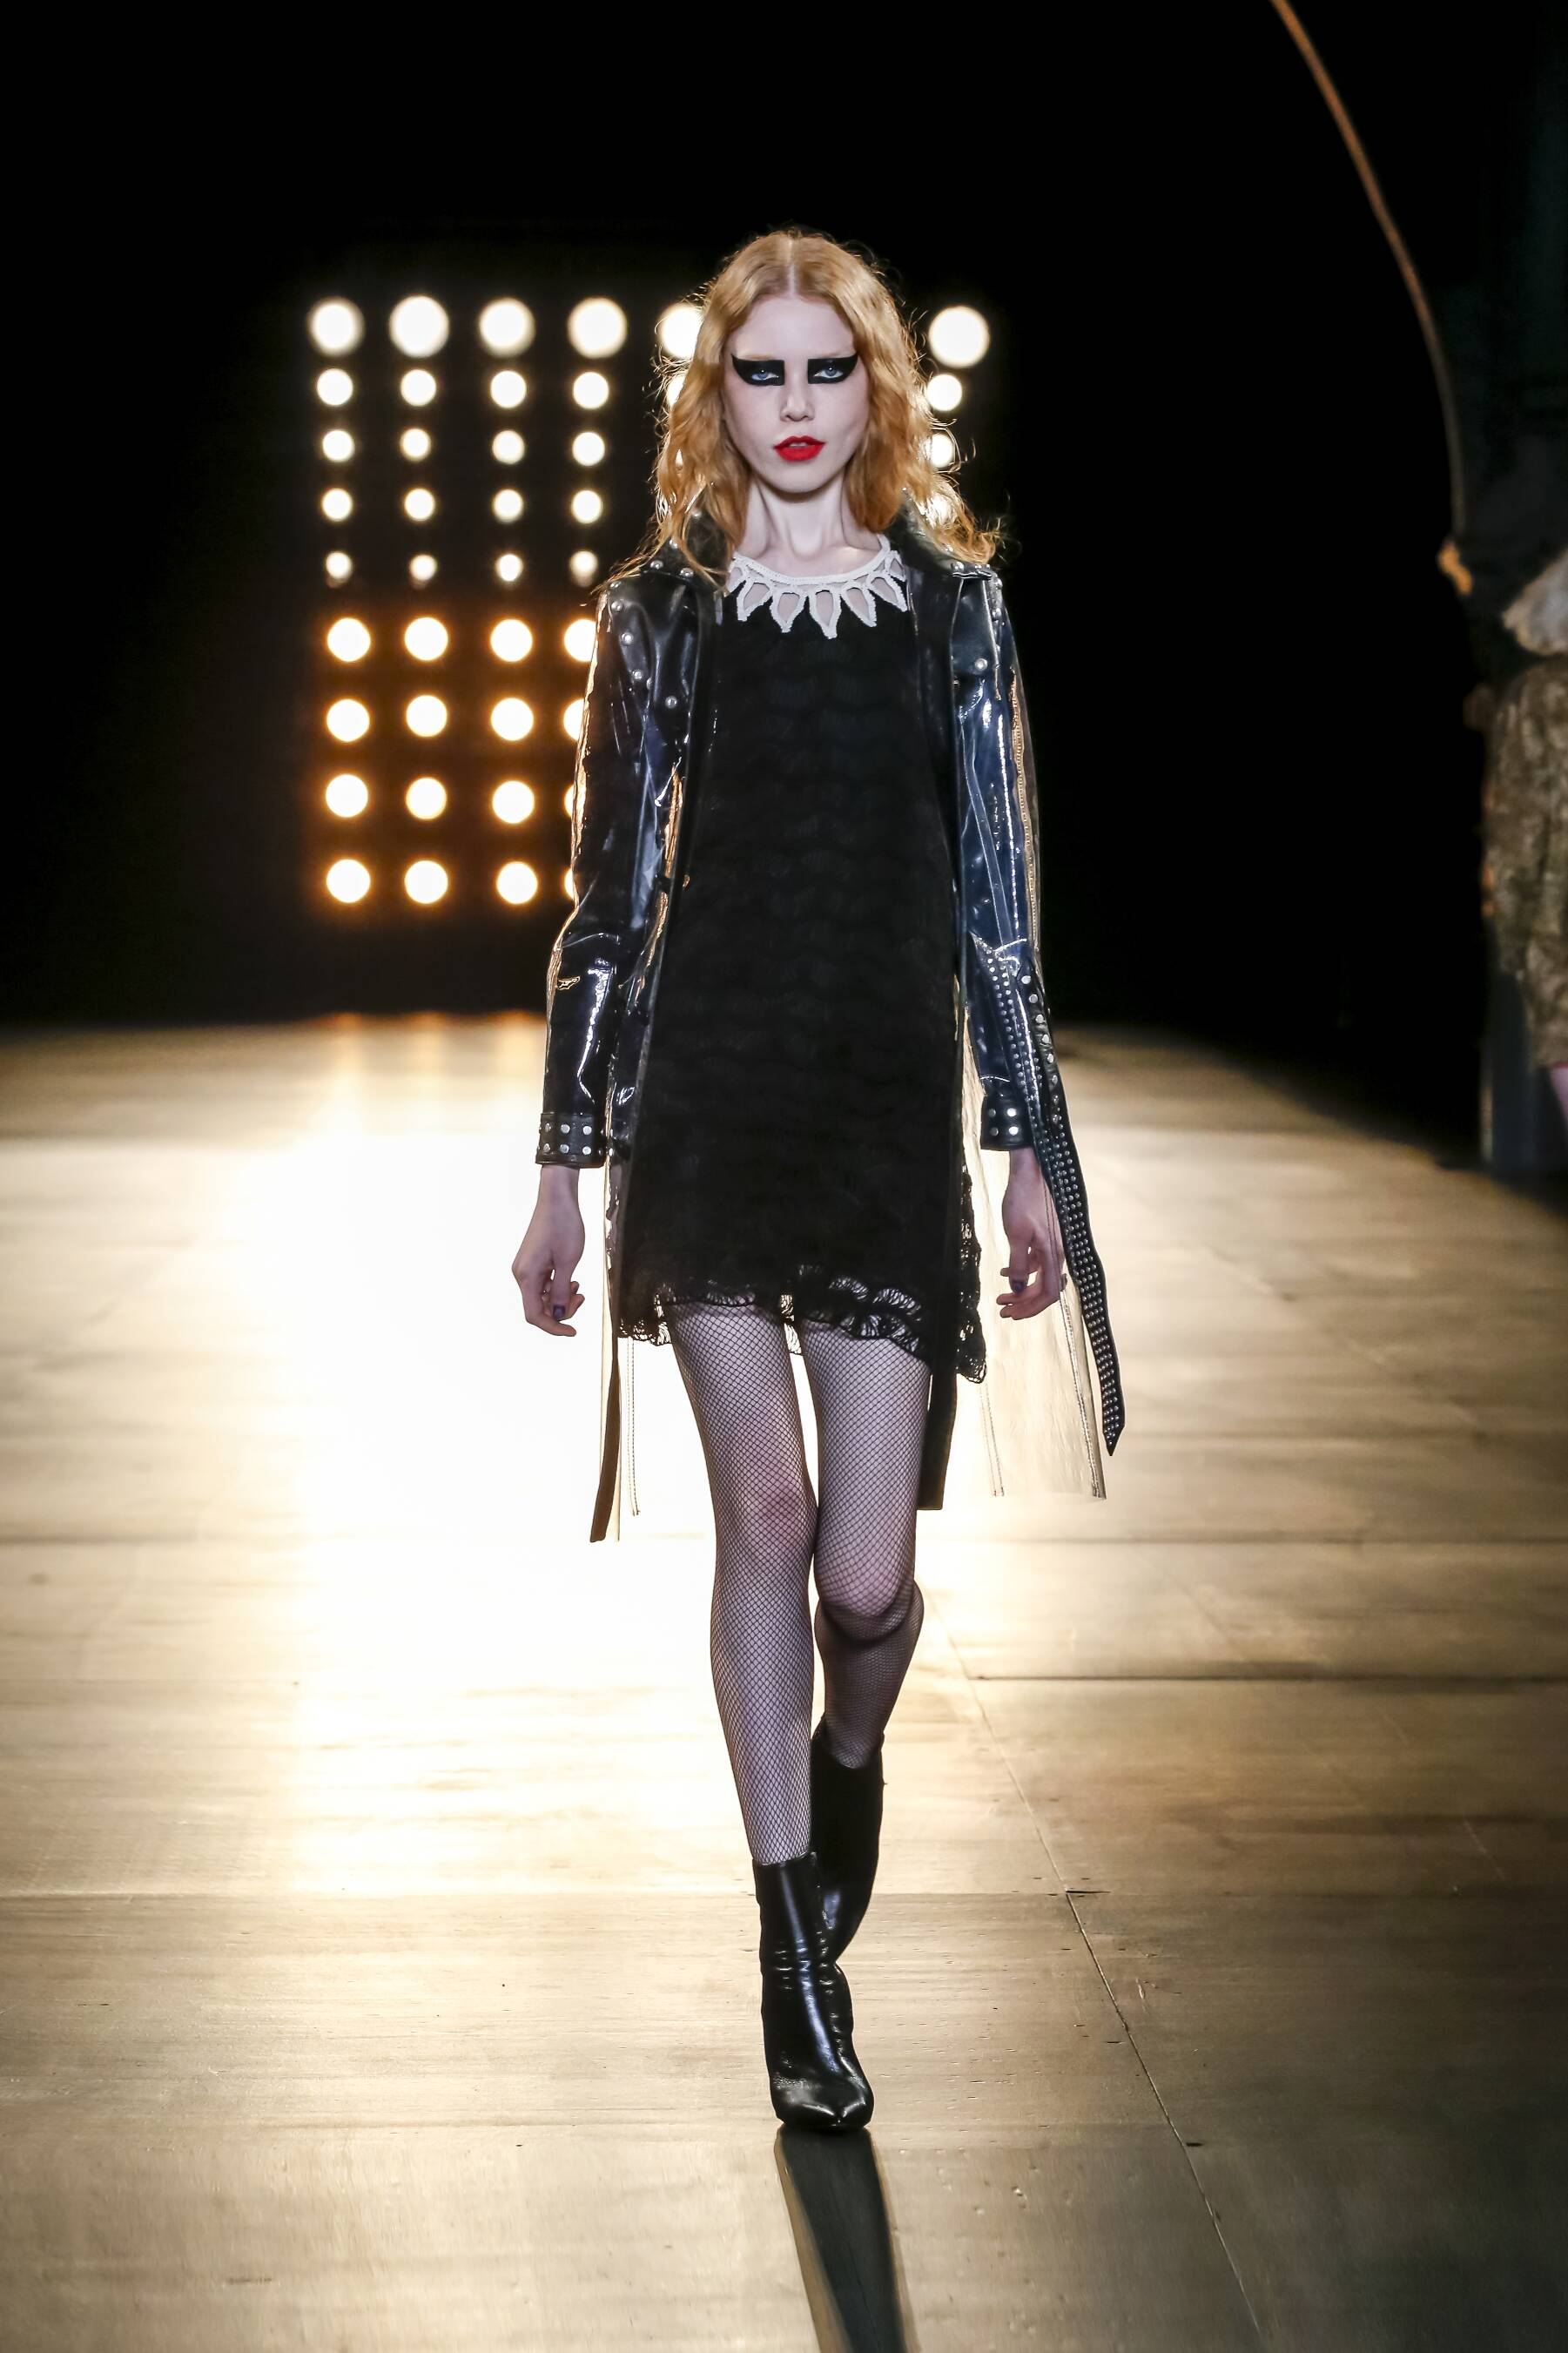 Fashion Show FW 2015 2016 Saint Laurent Womenswear